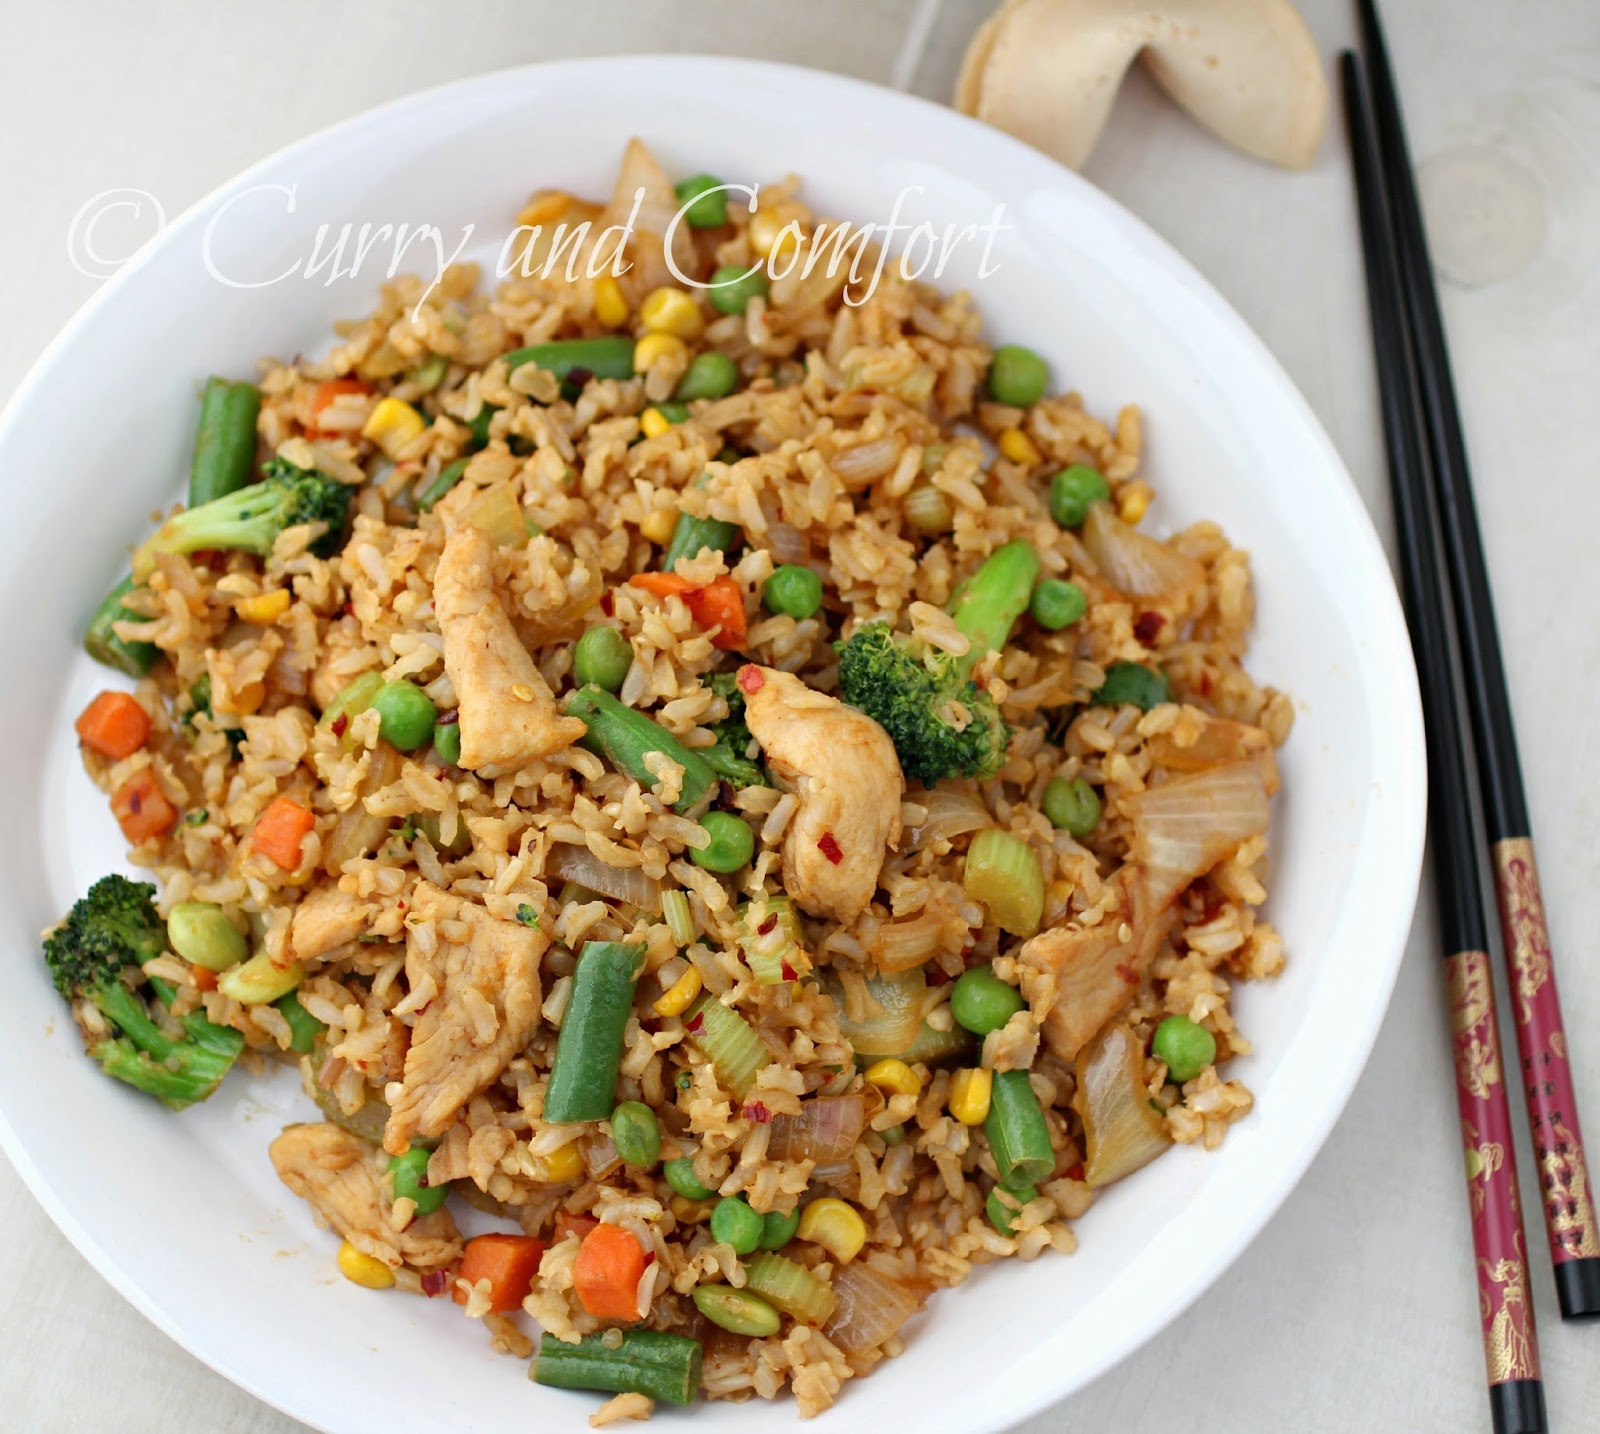 Kitchen simmer quick chicken fried rice once vegetables have heated through add the 2nd tbs of butter and the cold rice toss all ingredients and heat through well taste for salt and seasoning ccuart Images